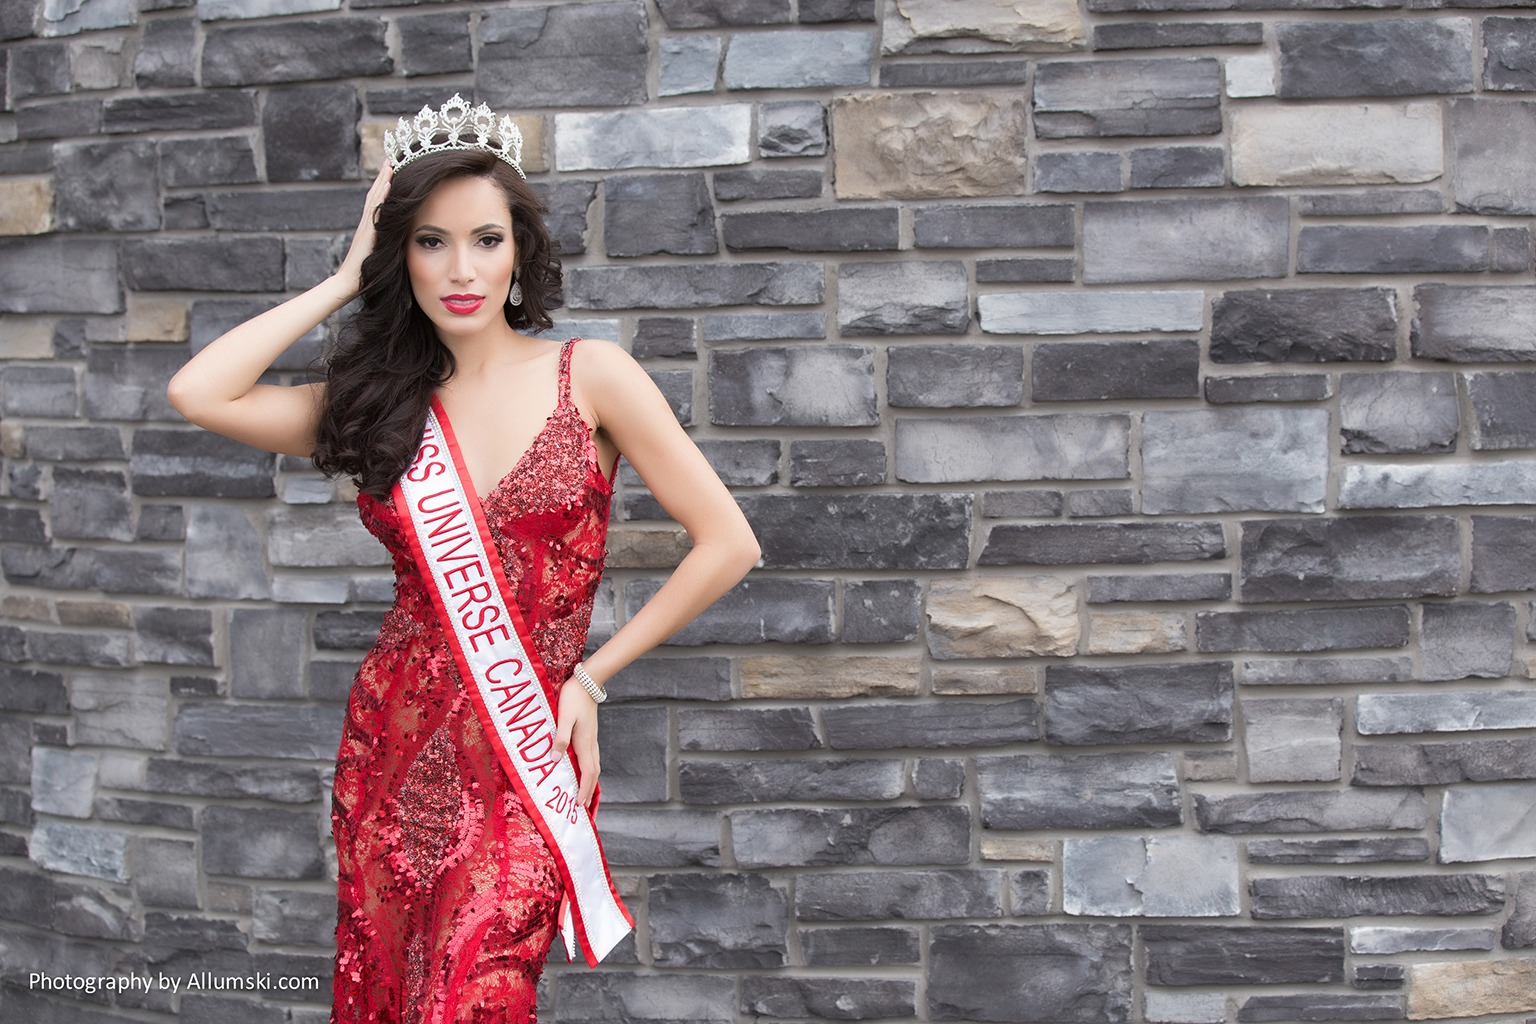 allumski-photography-pageant-miss-universe-canada